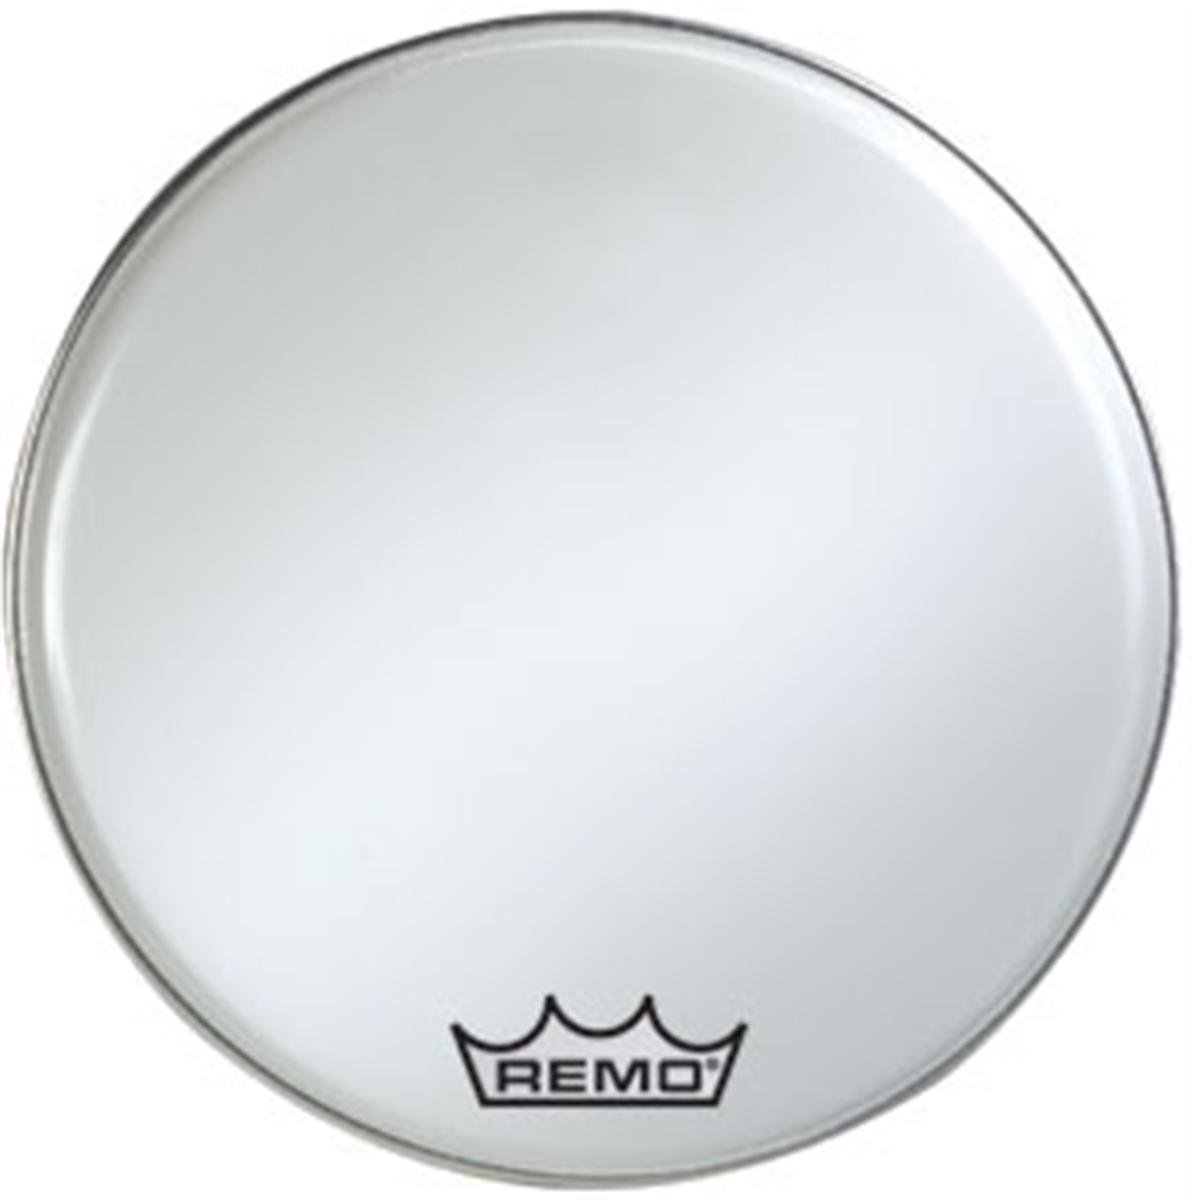 Remo BR-1216-MP 16-Inch Ambassador Marching Bass Drum Head, Smooth White KMC Music Inc